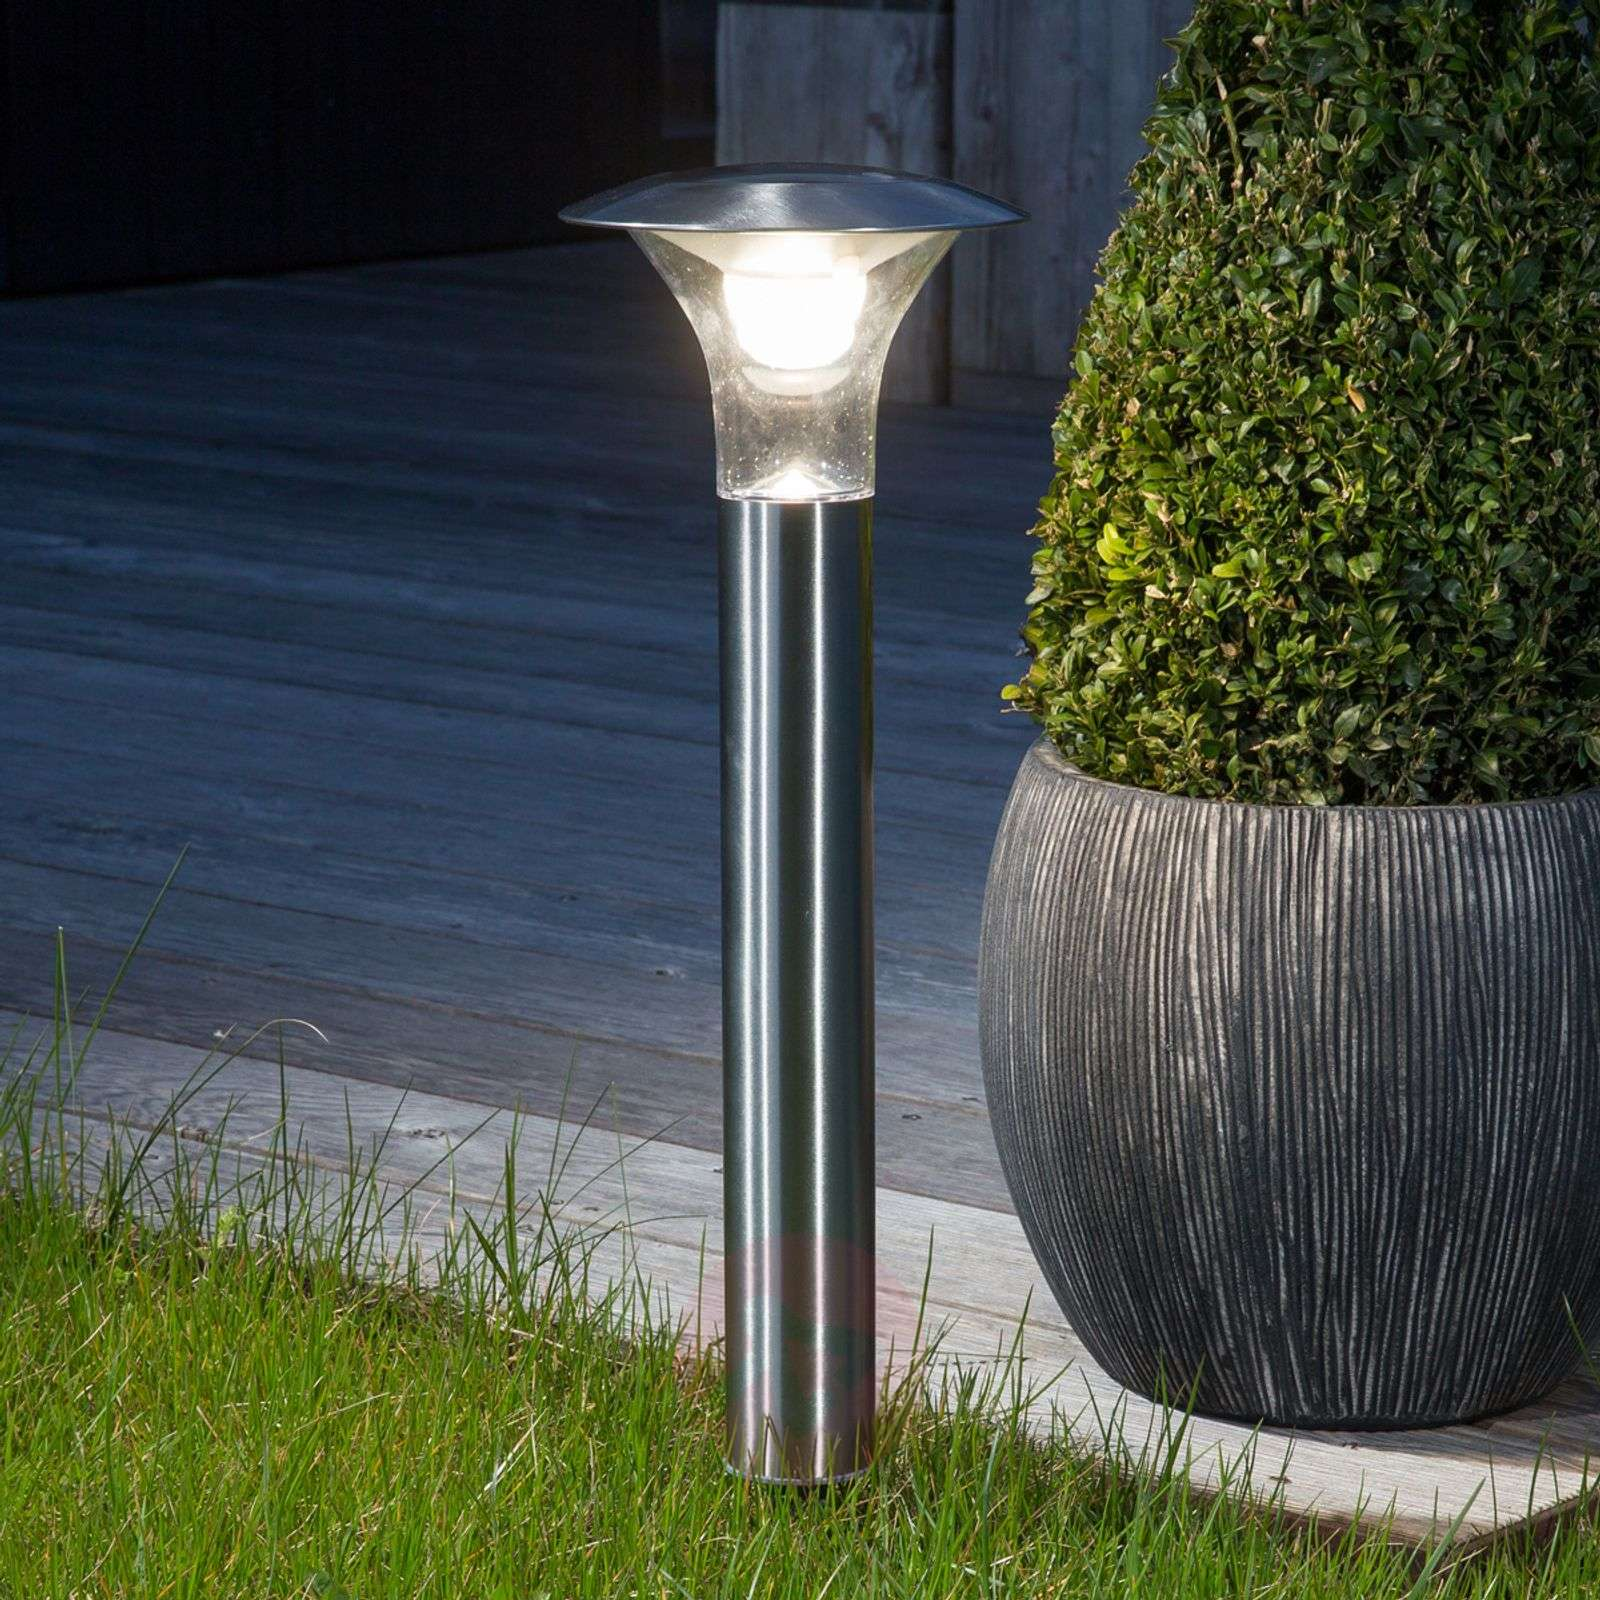 Bodemankerlamp Jolin met LED, zonne-energie-9945062-01